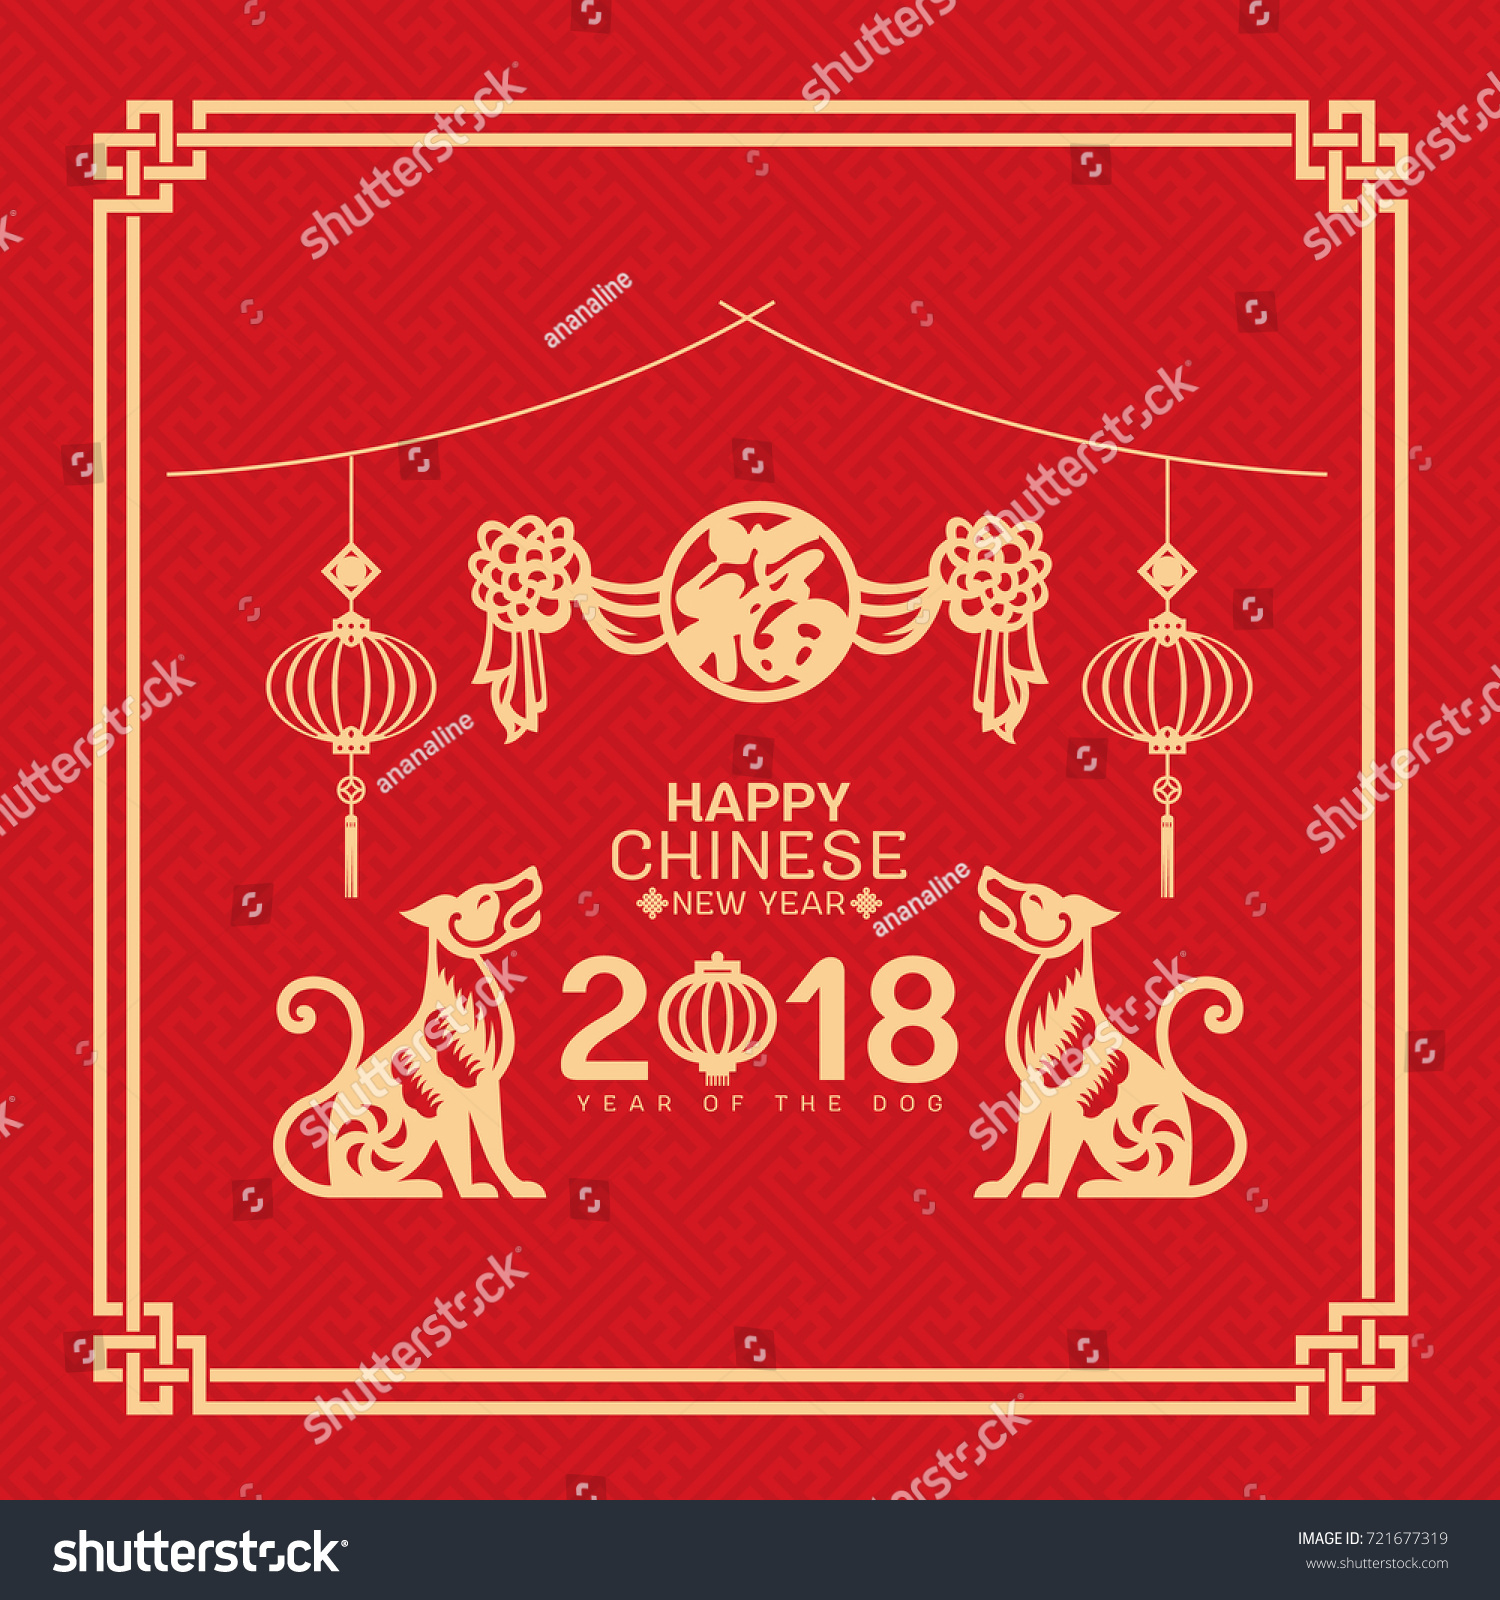 celebration for happy chinese new year 2018 card with twins dog zodiac lantern and drapery